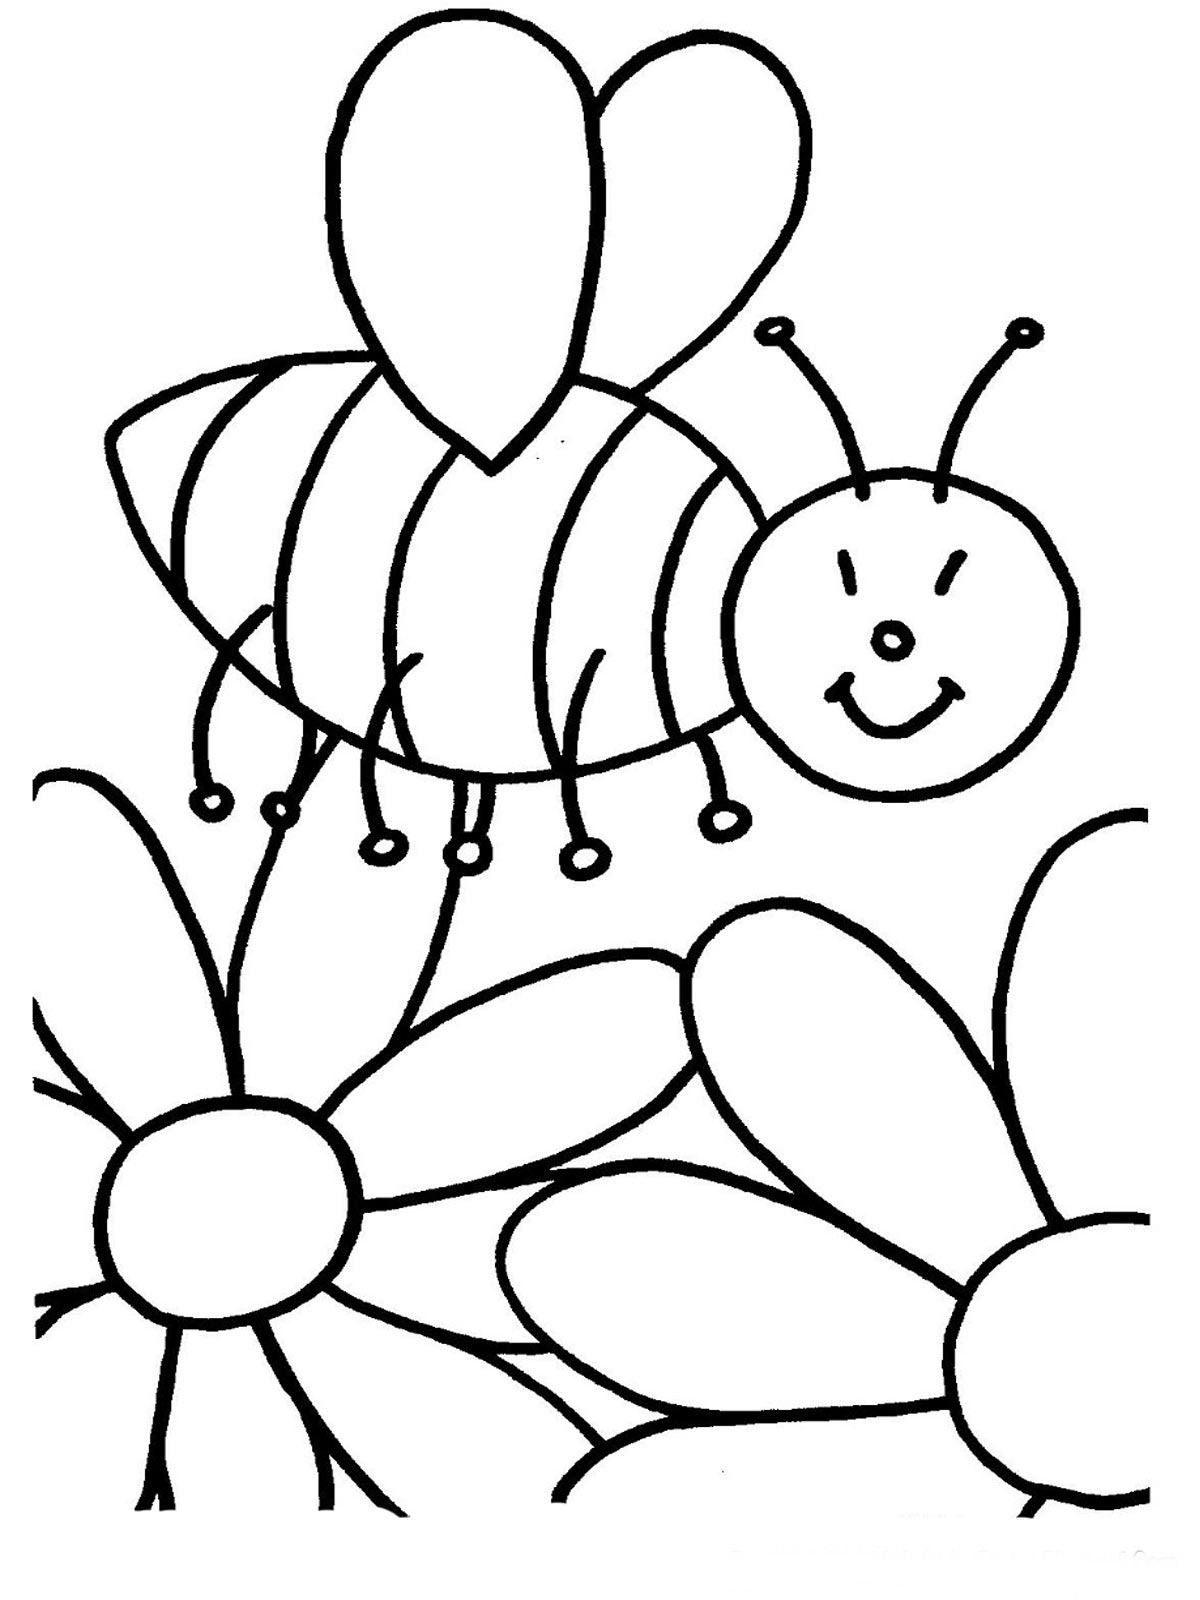 Spring coloring pages for 4th graders - Flower Coloring Pages Are Common To Be Used Today For The Kids The Variations Can Be Chosen Based On The Subjective Reason And The Condition Of The Kids